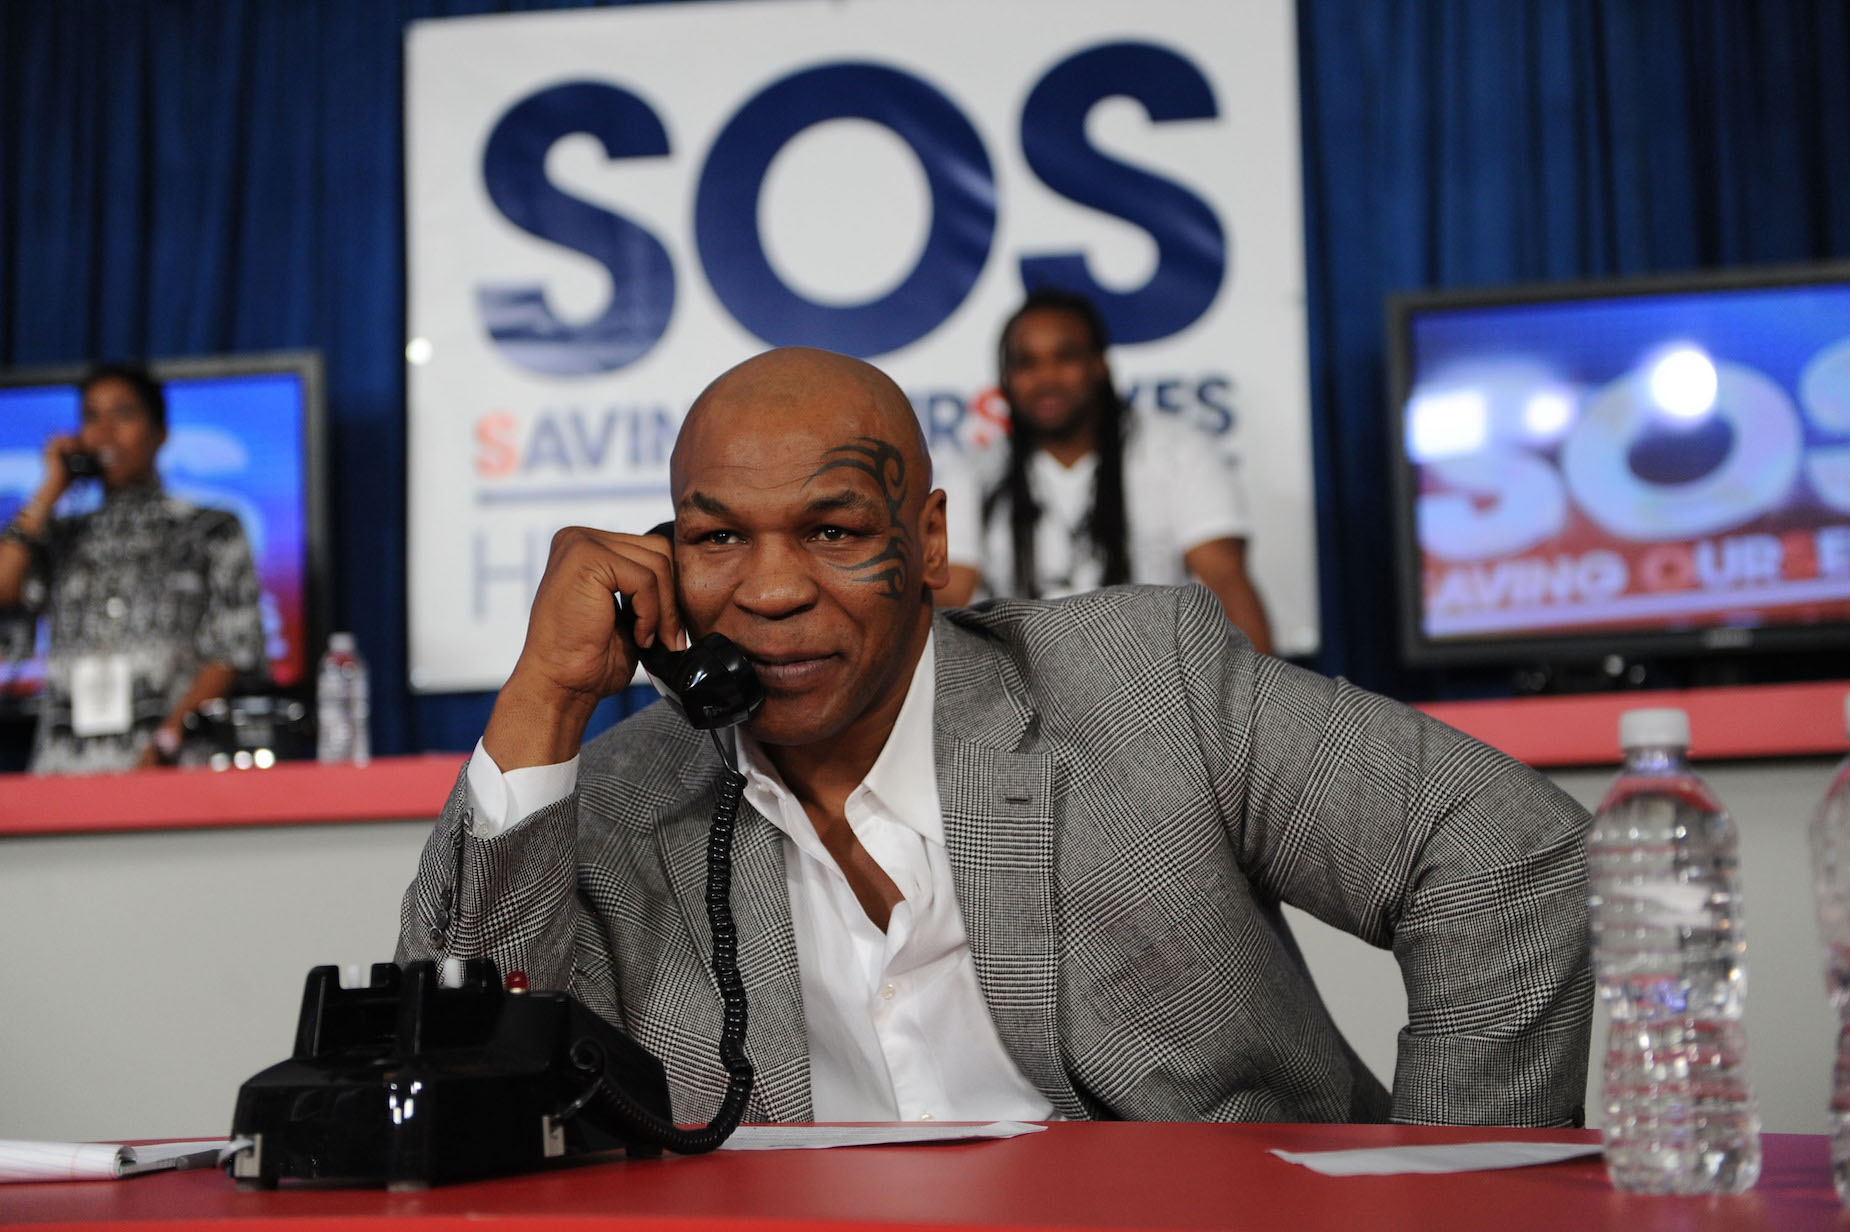 In the early 1990s, Mike Tyson went to some extreme lengths in an attempt to avoid a prison sentence.